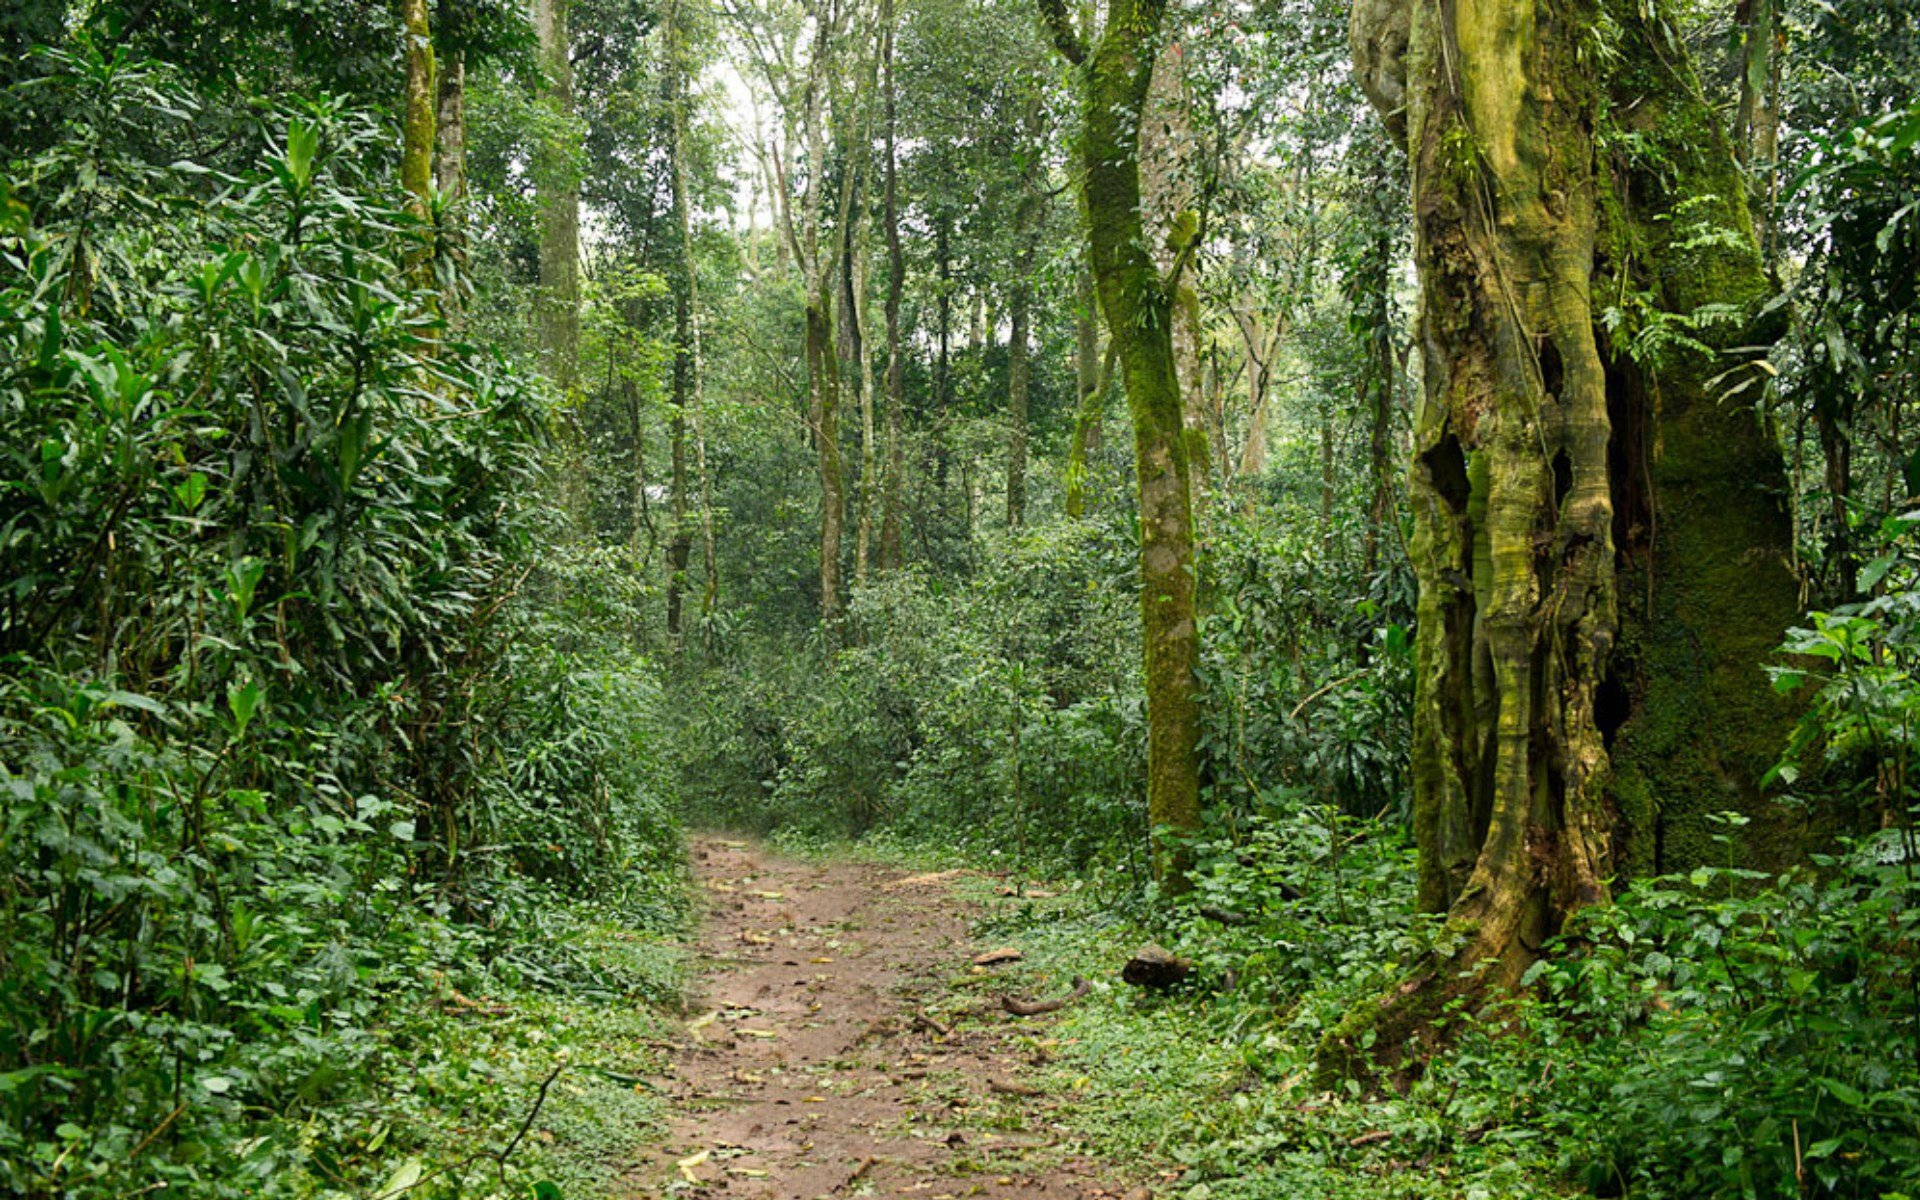 Kakamega Forest Reserve has over 7 KM of walking trails you can take under the guidance of a team of rangers ready to escort you through the forest.